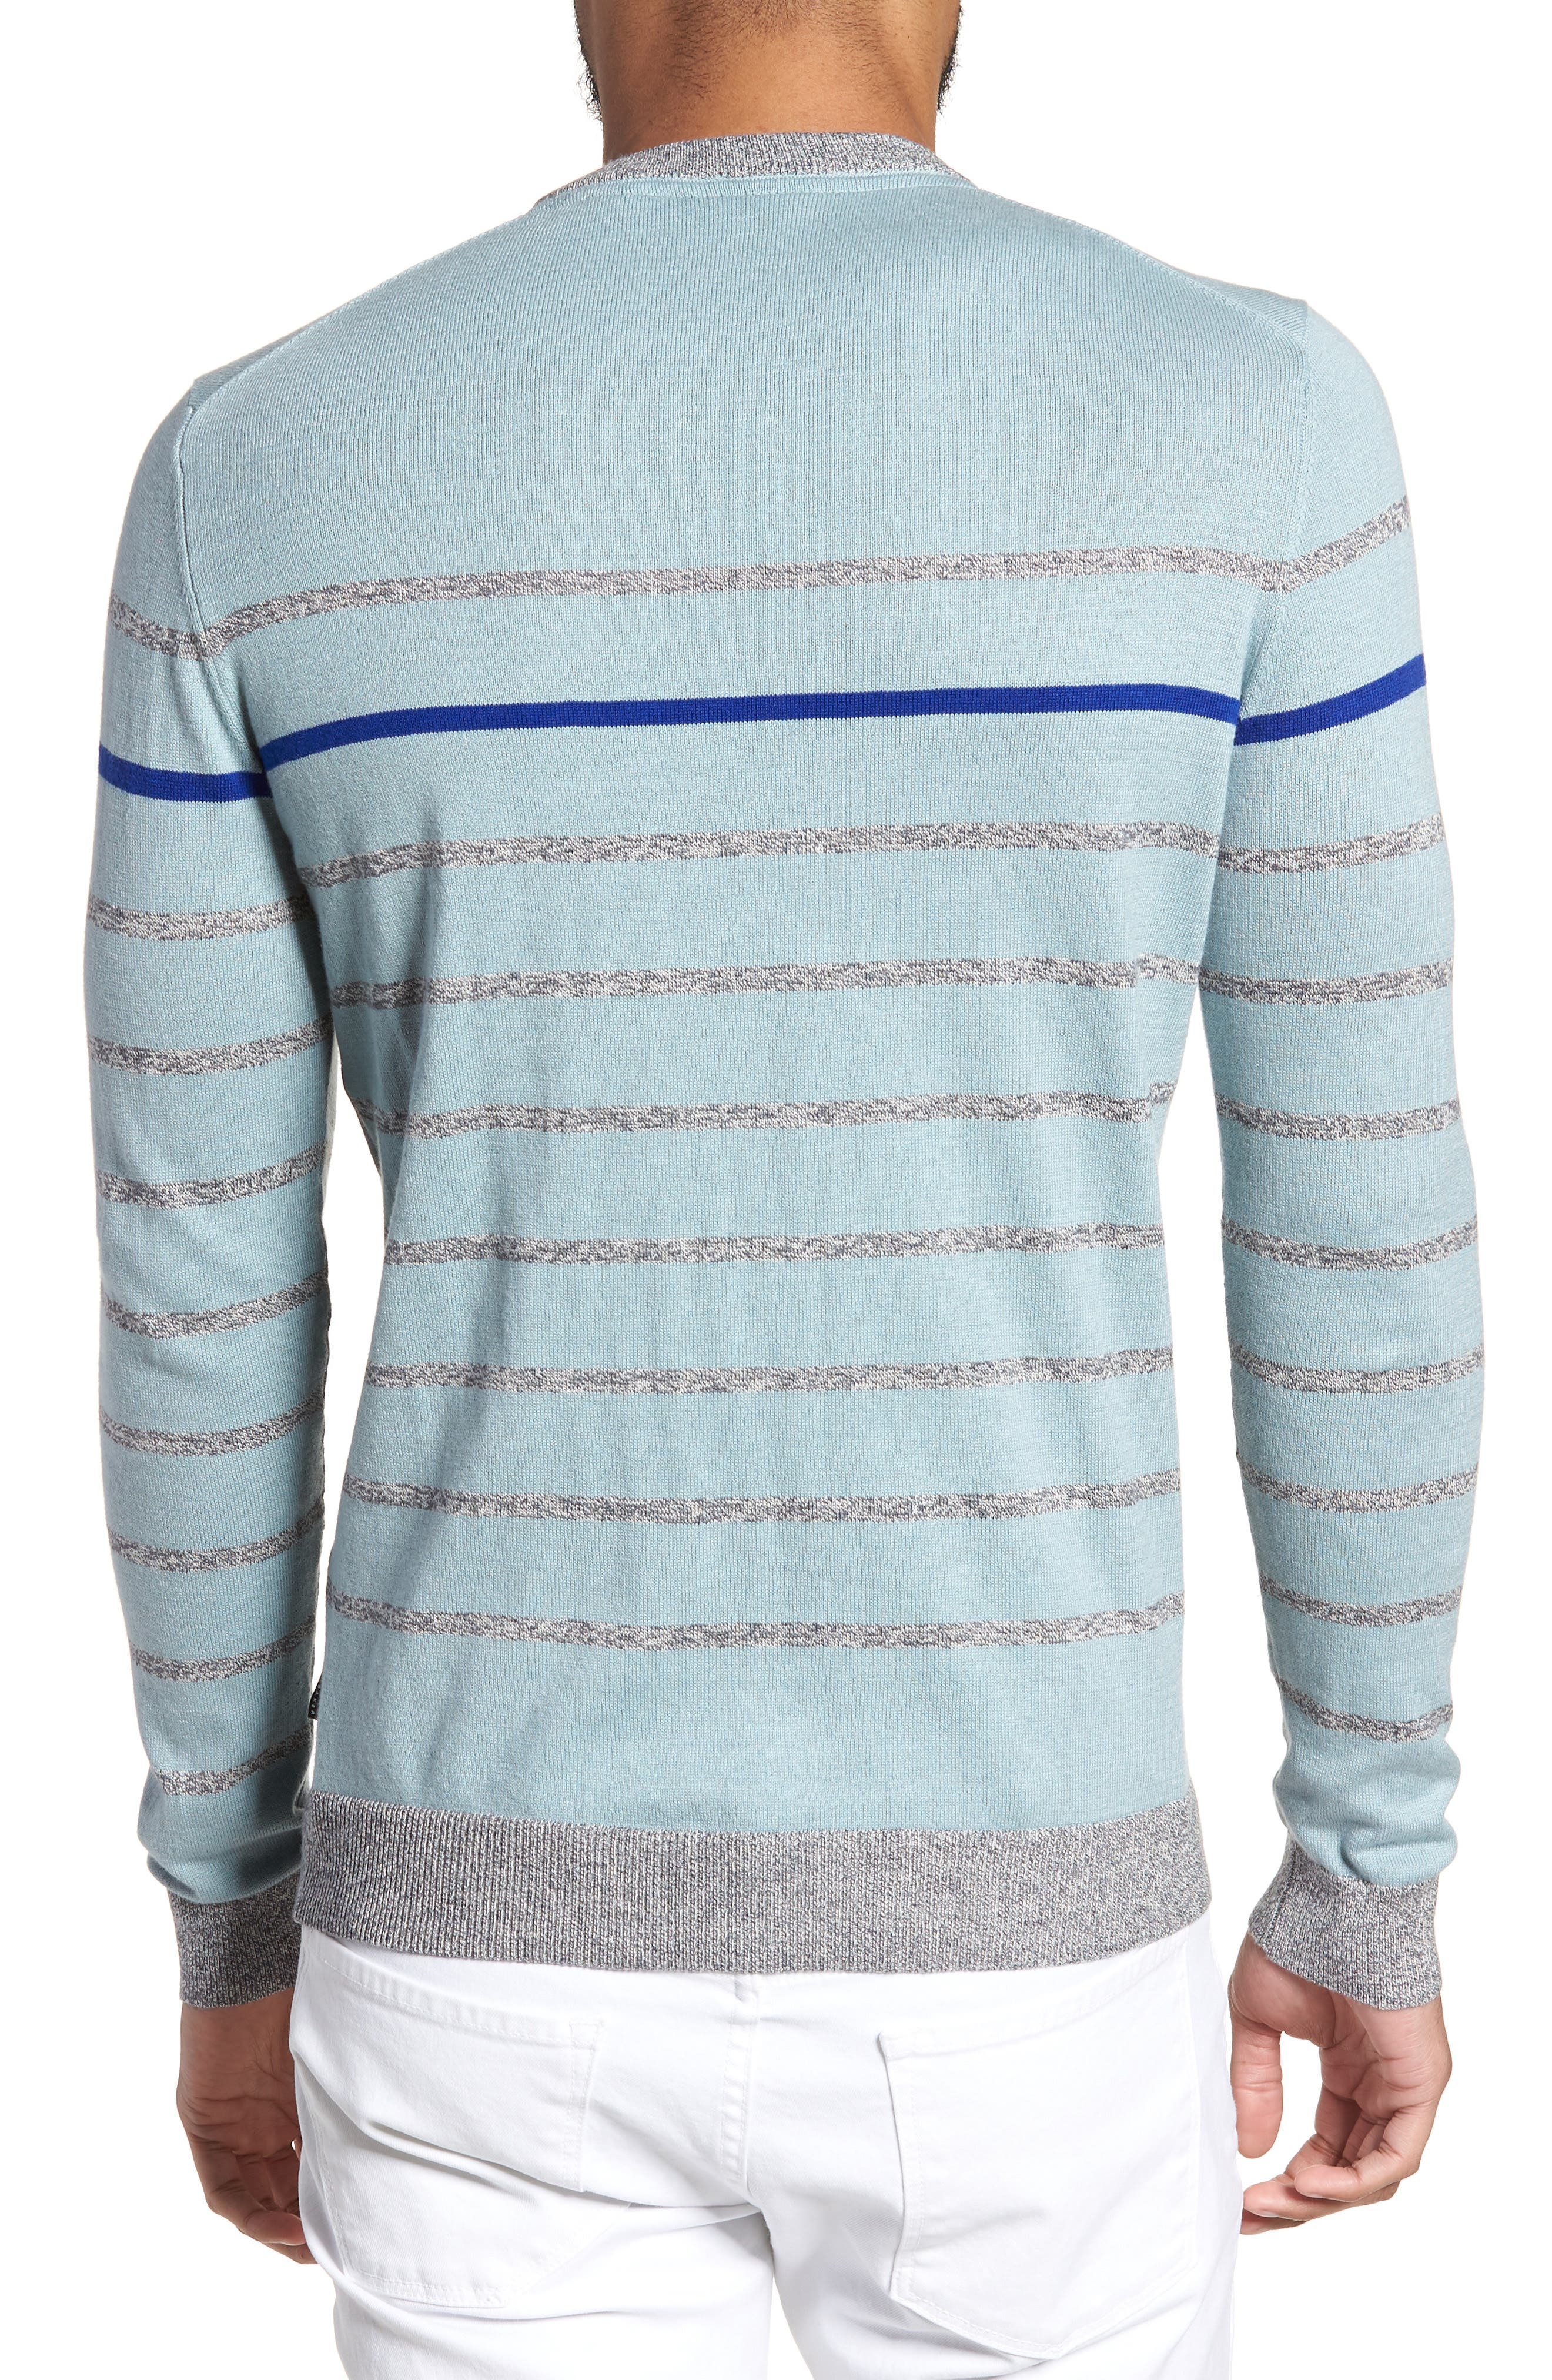 Britnay Trim Fit Stripe Crewneck Sweater,                             Alternate thumbnail 2, color,                             Blue